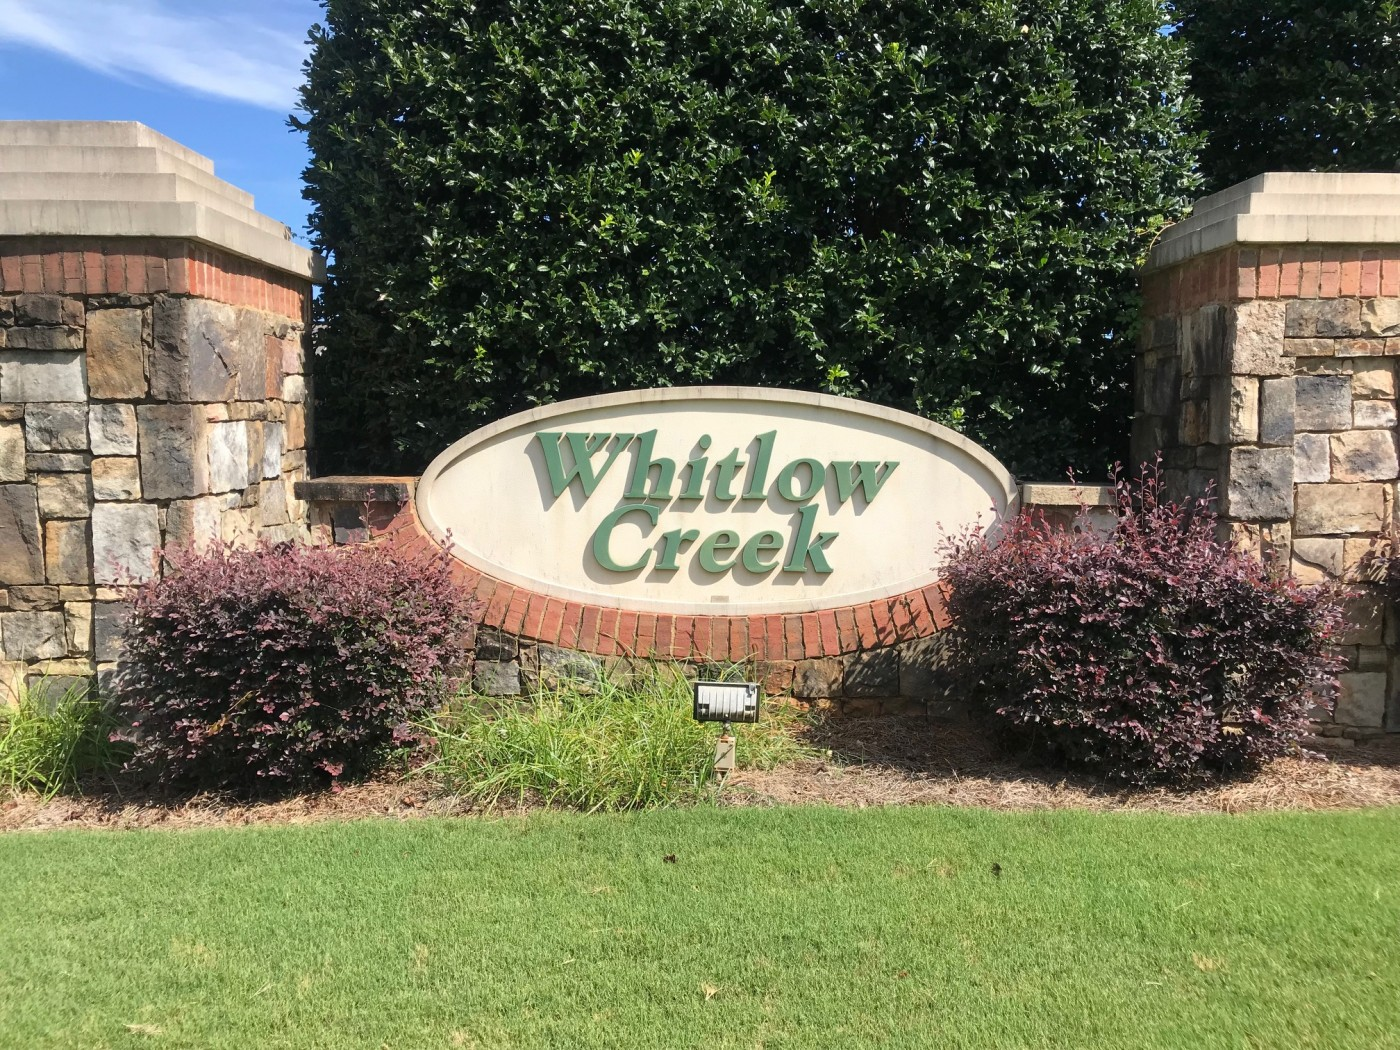 Homes for sale in Whitlow Creek